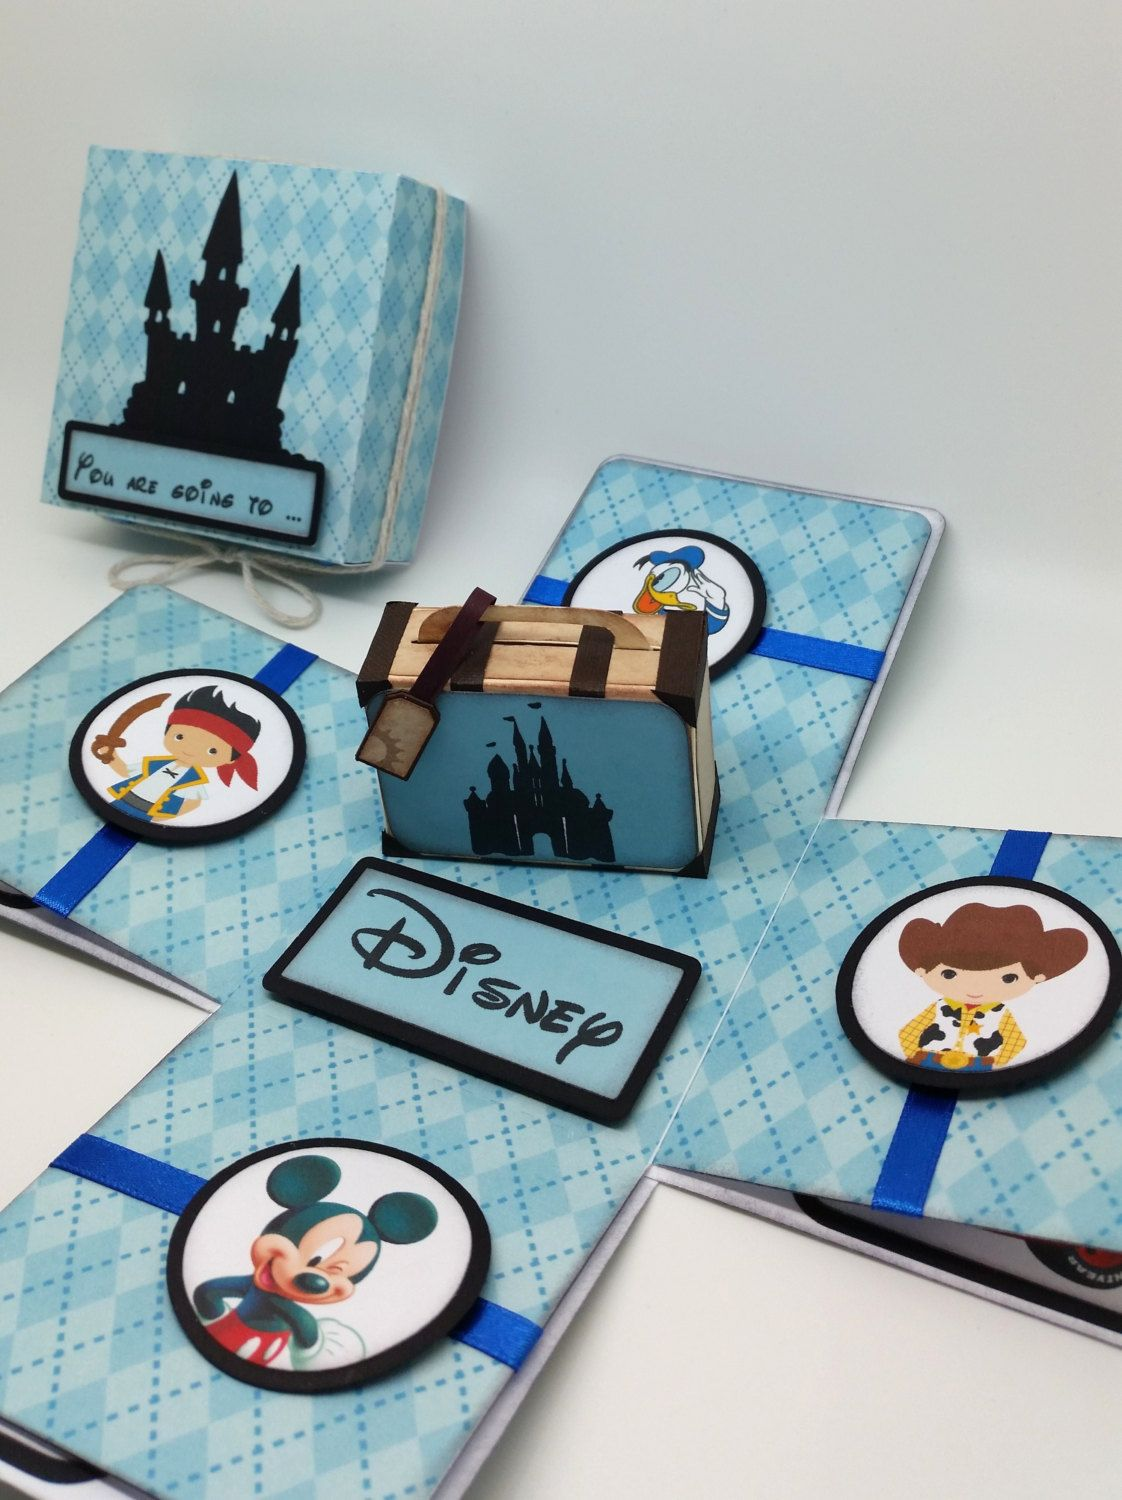 You are going to Disney - Surprise trip - Travel Theme - Suitcase ...